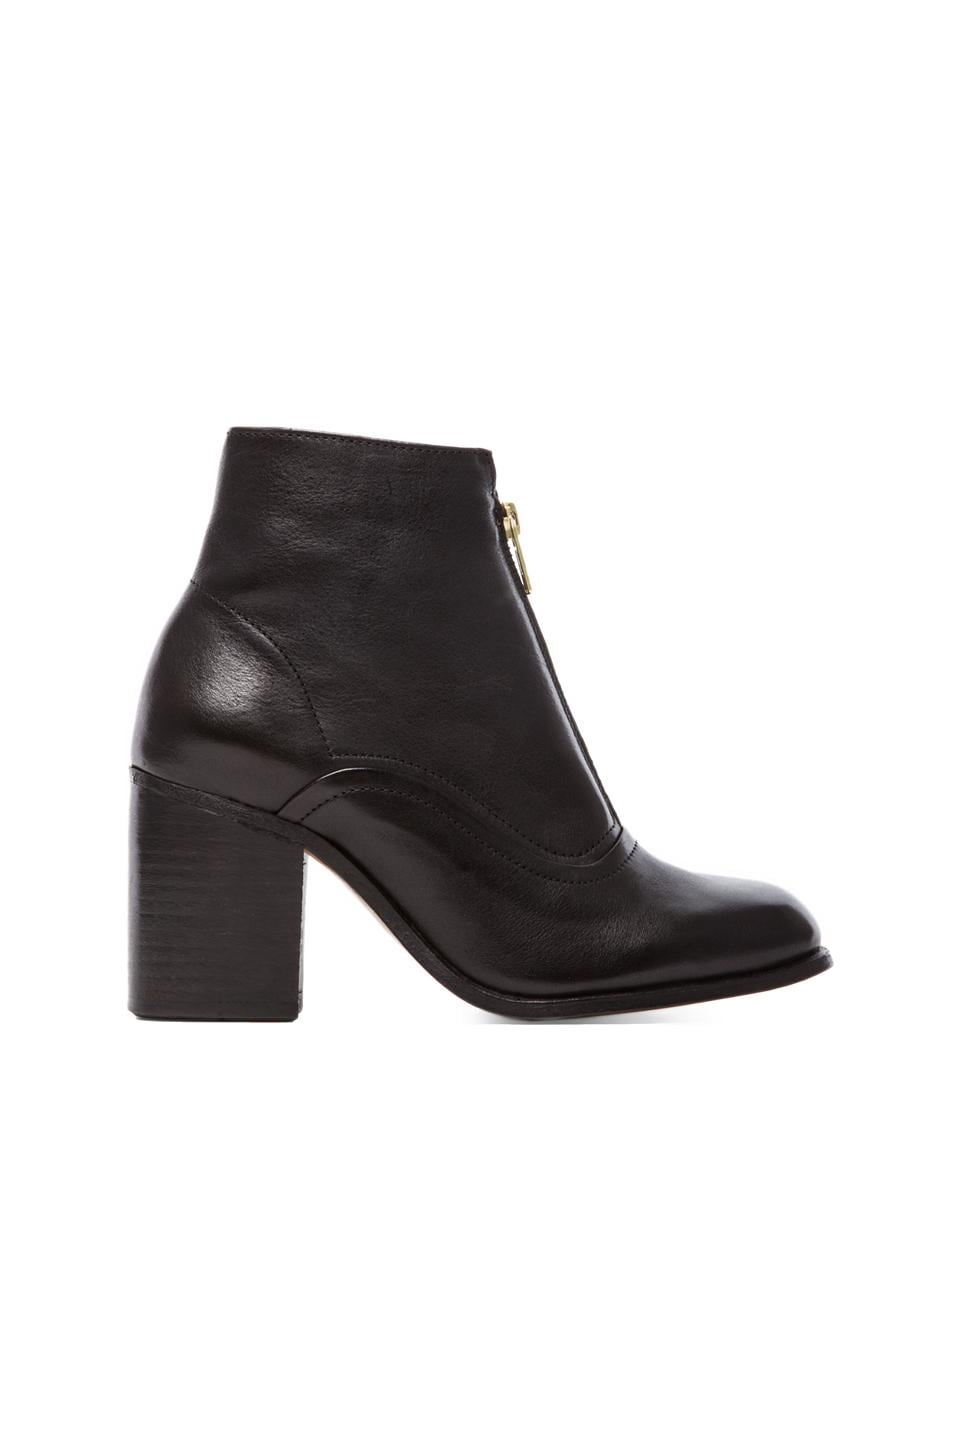 H by Hudson Piper Bootie in Calf Black